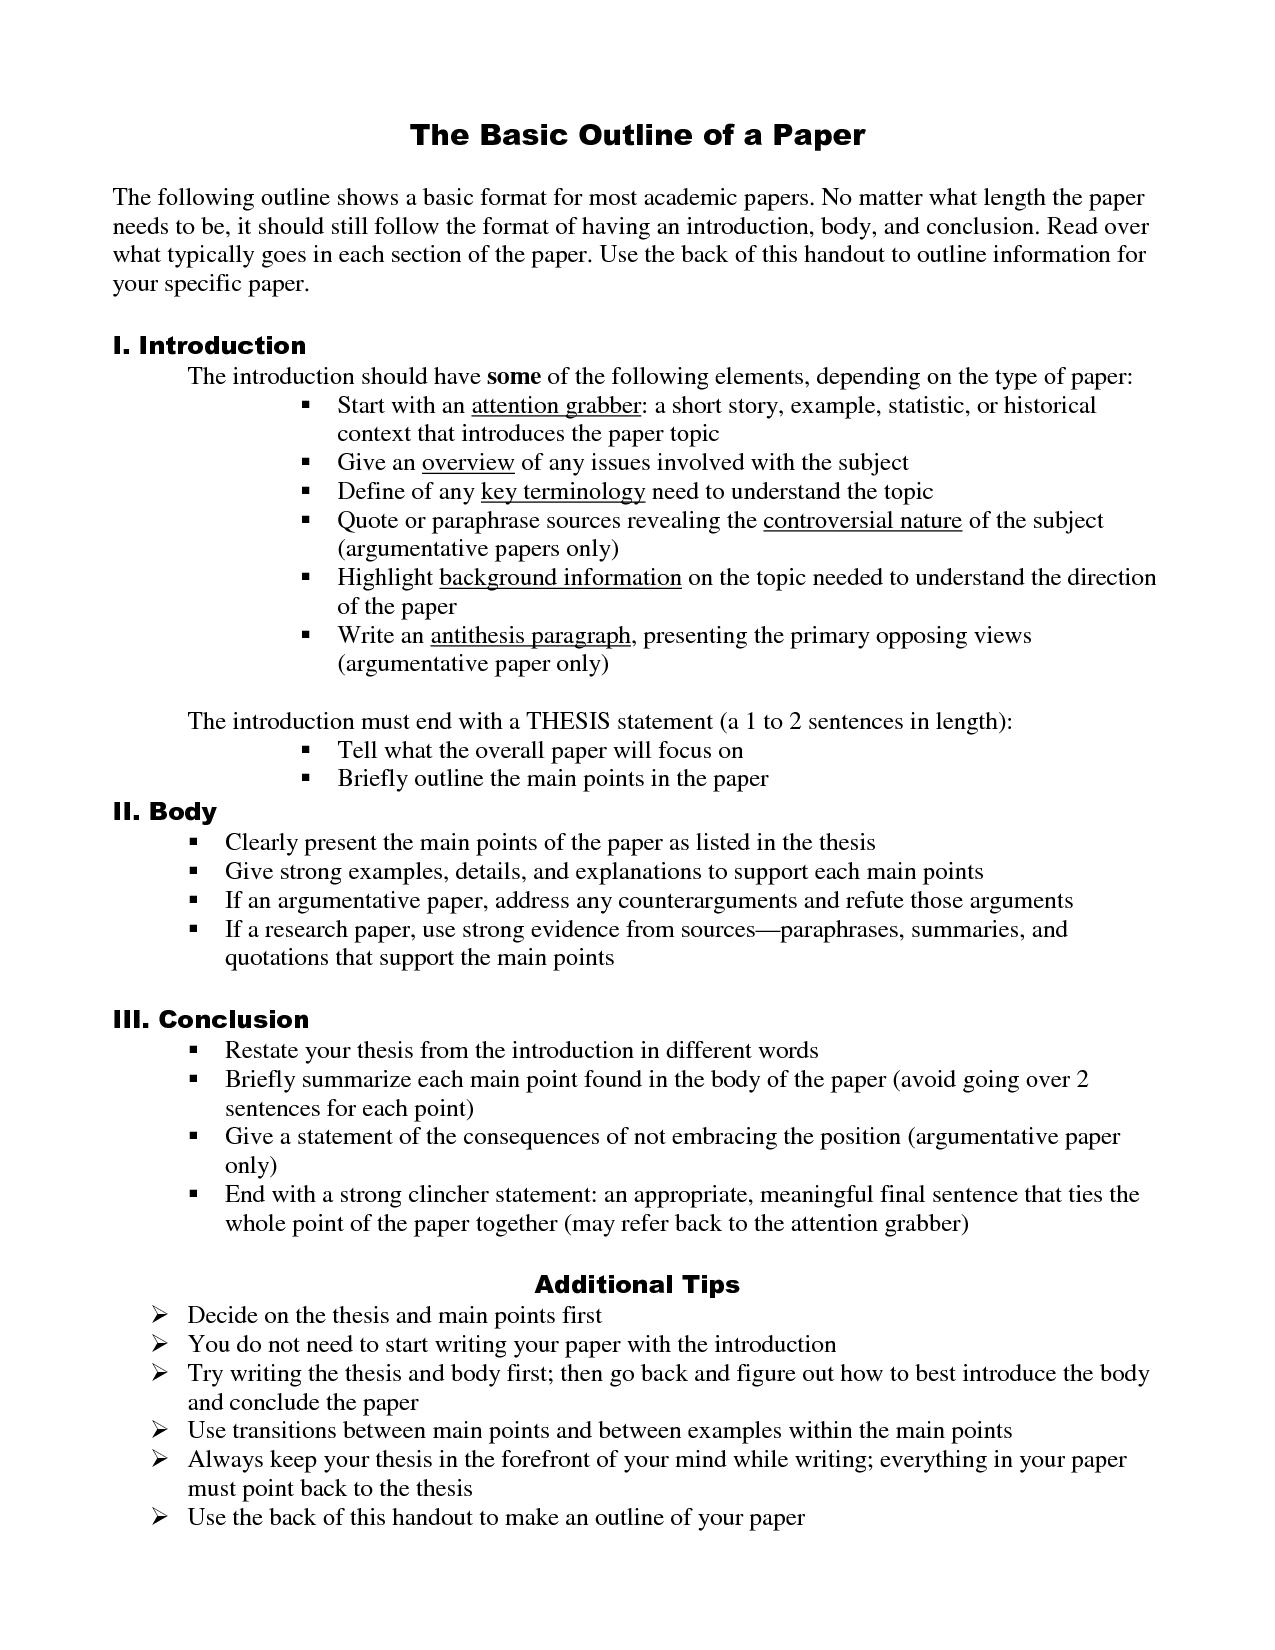 high school science research paper guidelines 1 research paper handbook table of contents research project grades 4-8 philosophy.